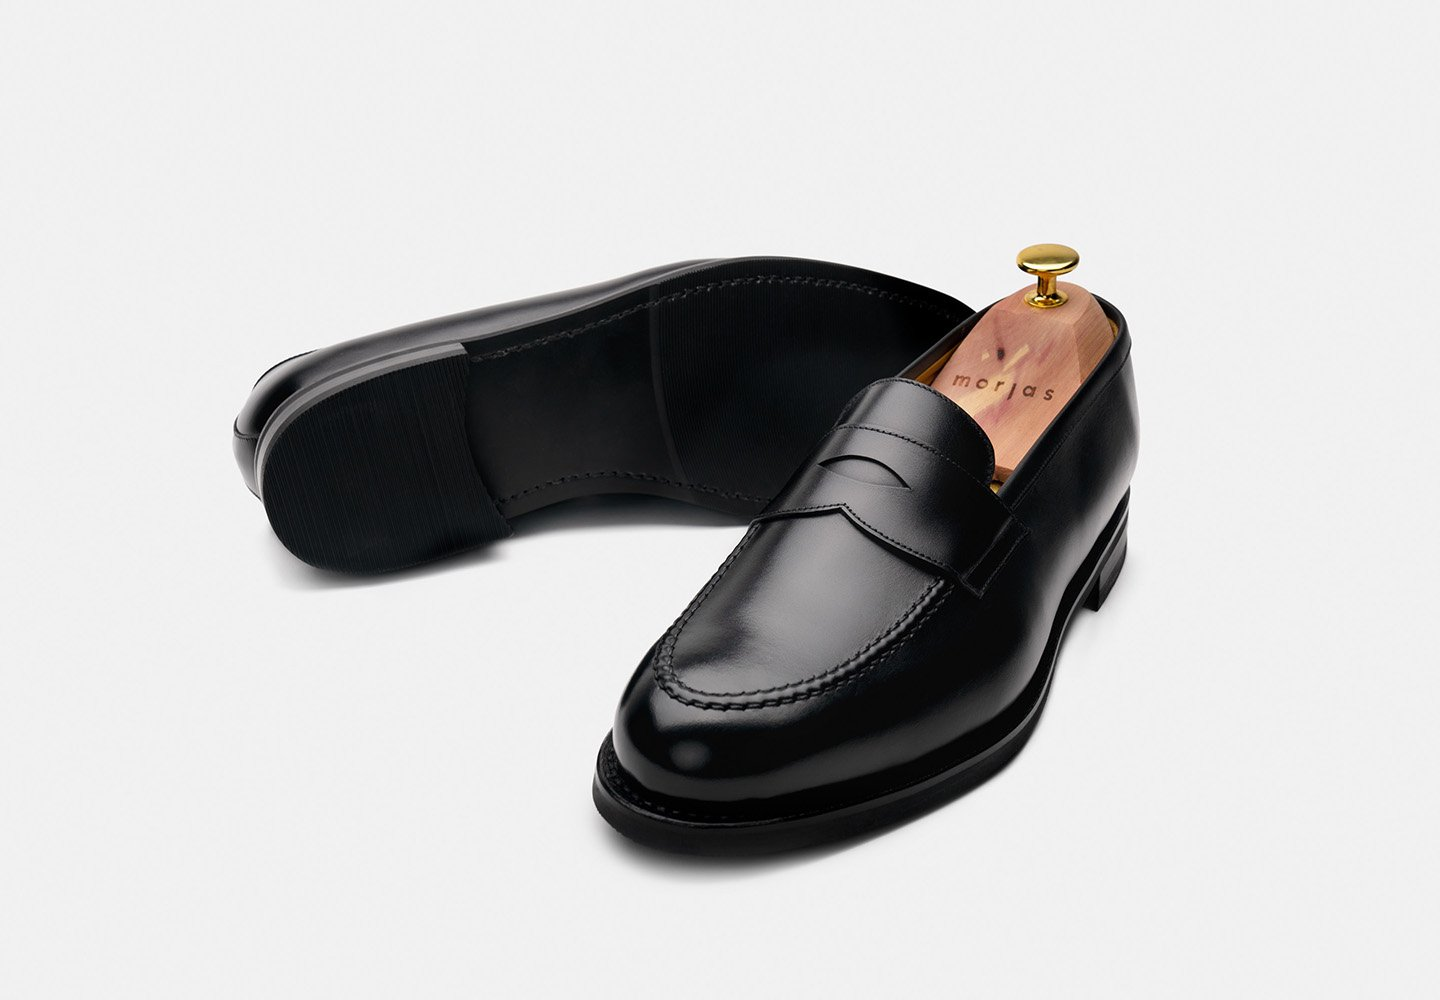 penny-loafer-black-calf-rubber-sole-morjas